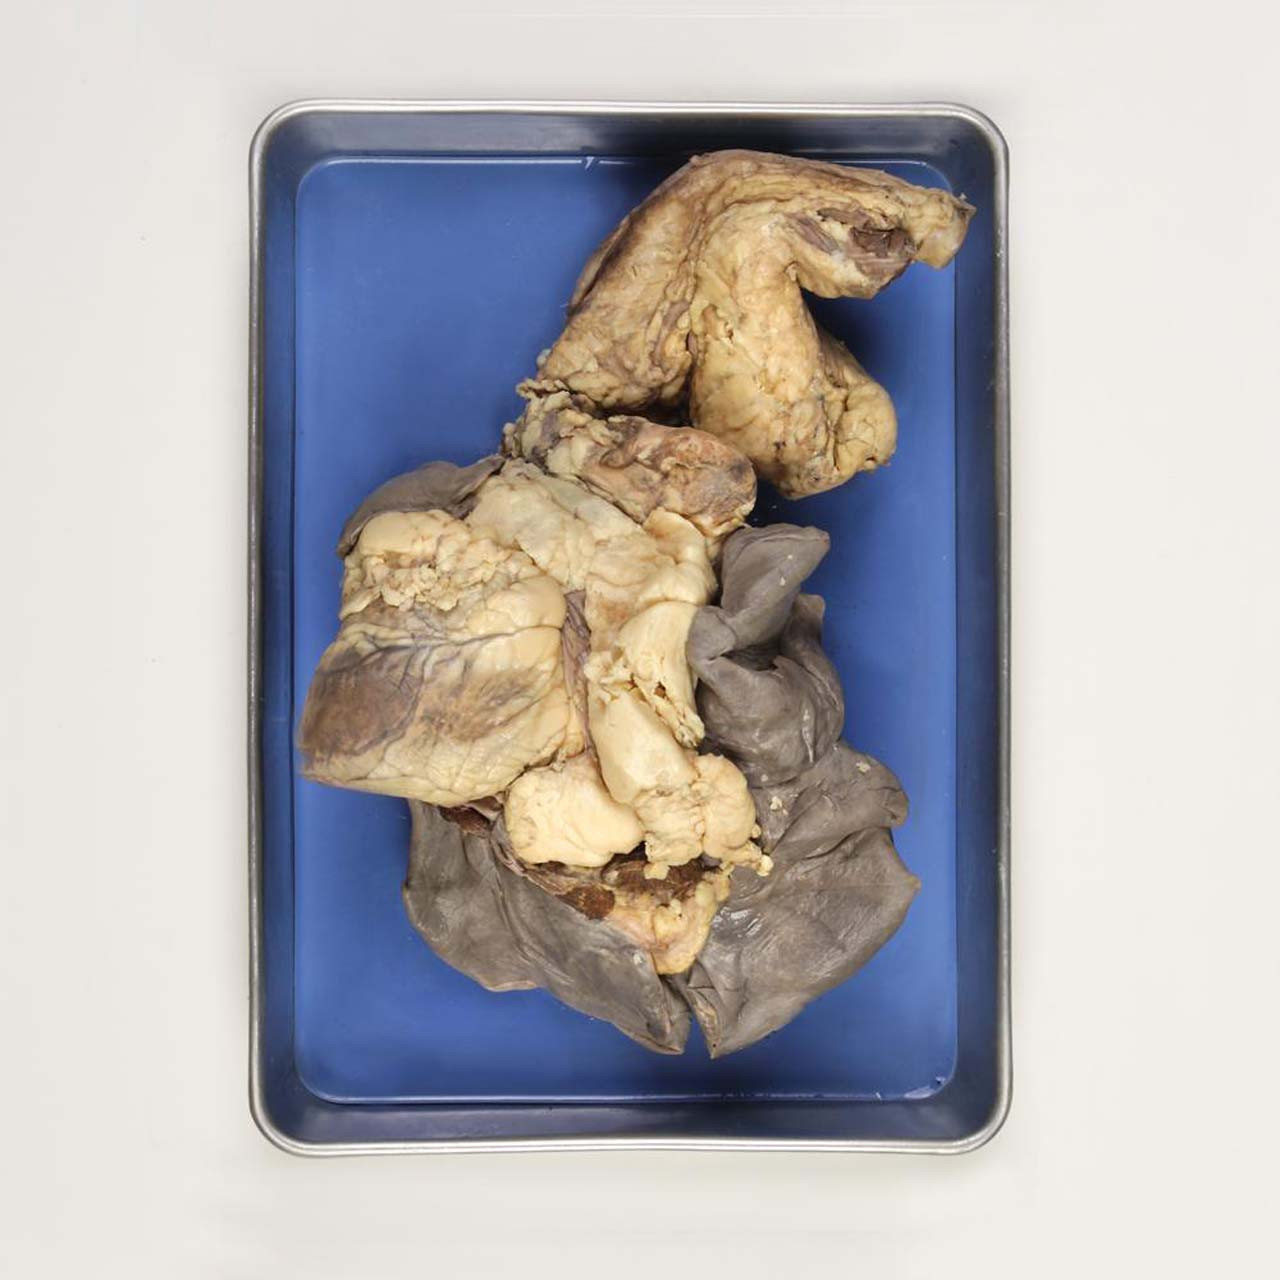 PM1.936 - Sheep pluck, preserved, heart with aorta and lungs with trachea, Perfect Solution Sales restricted to Australia